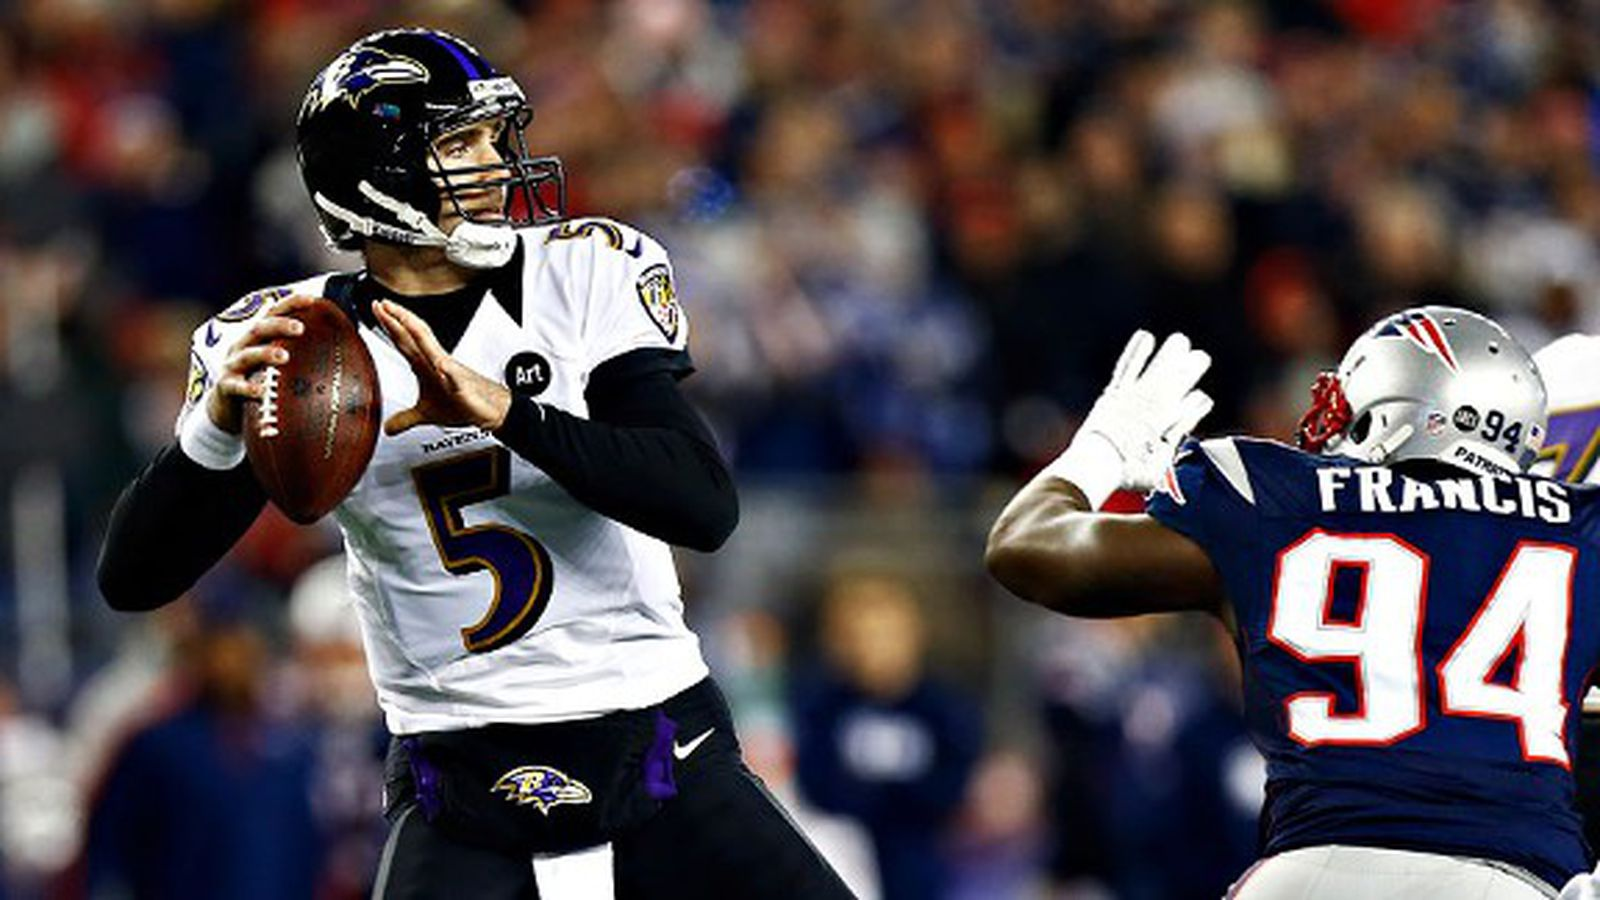 Flacco_2012_patriots_win.0.0